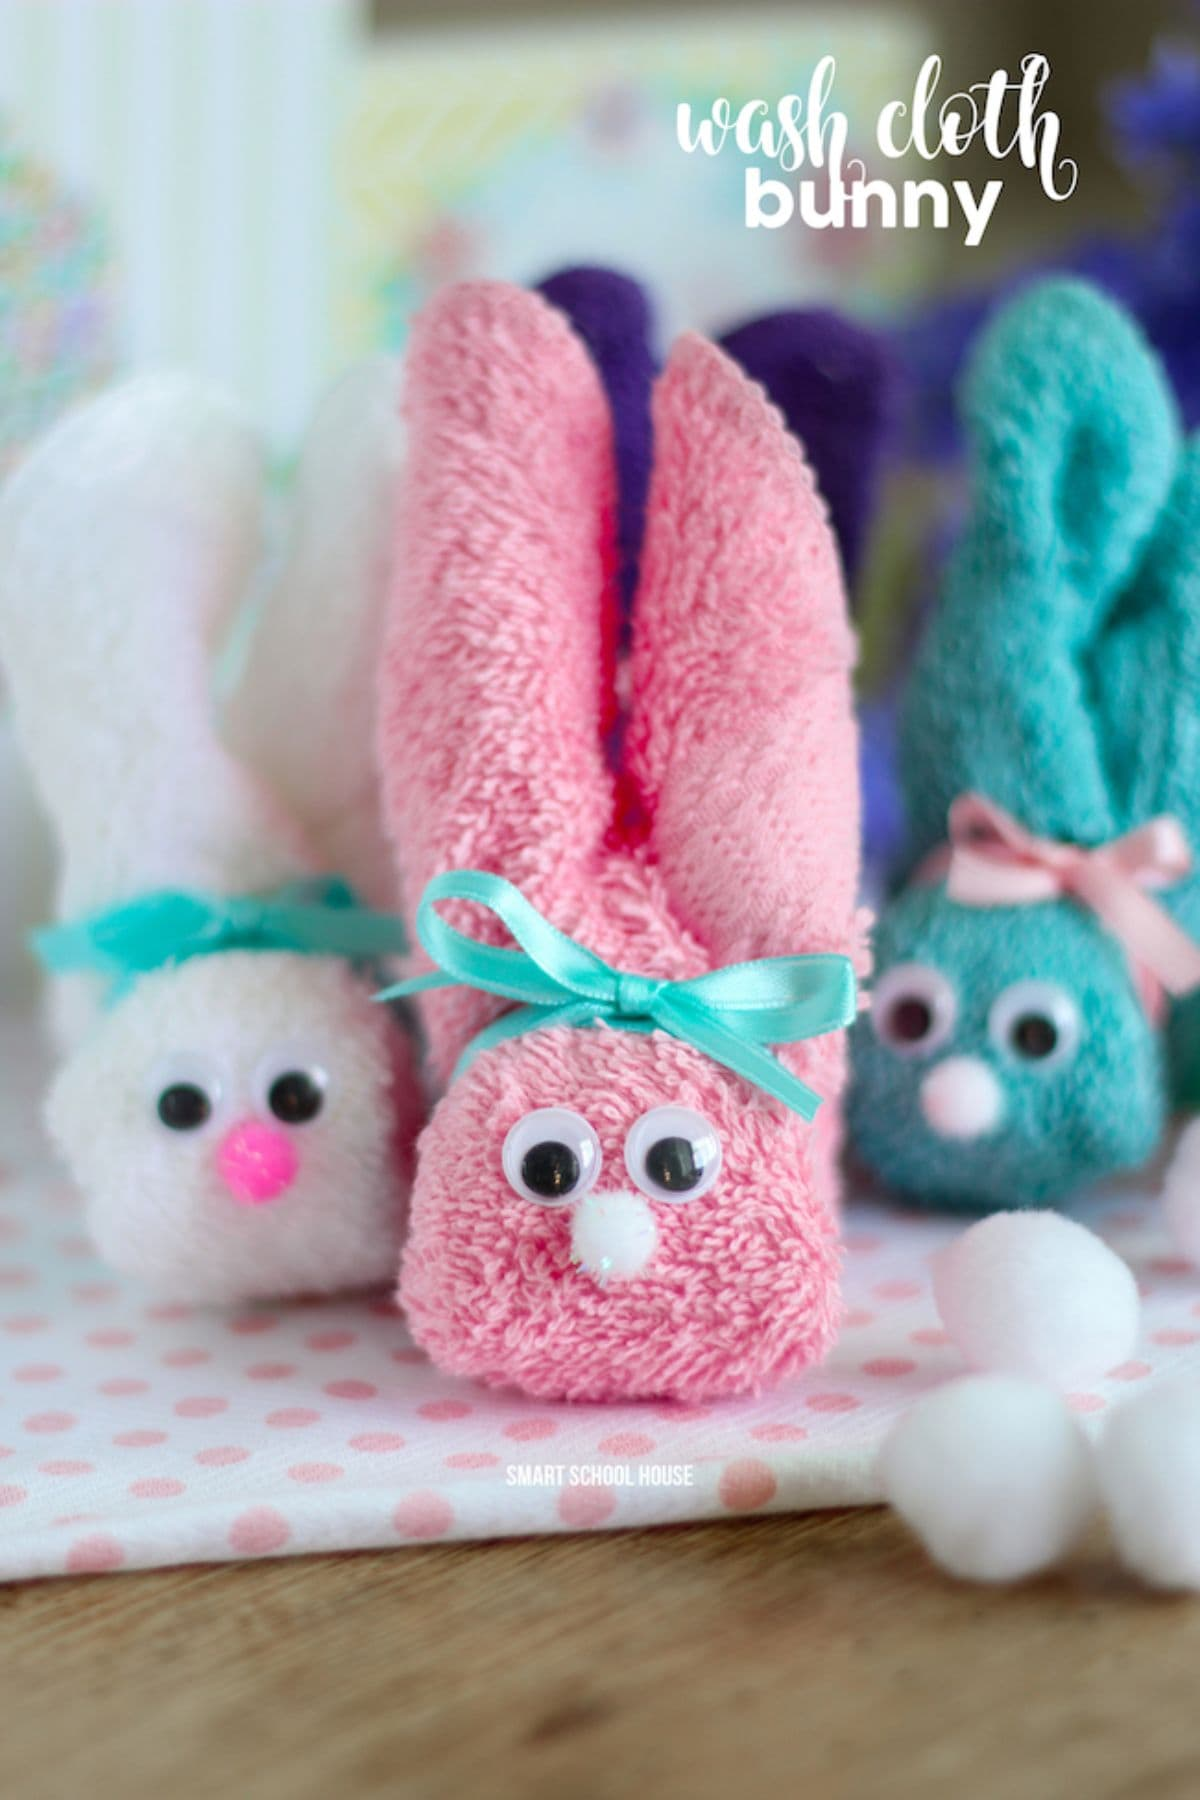 Three bunnies made of differnet colored washcloths sit next to each other